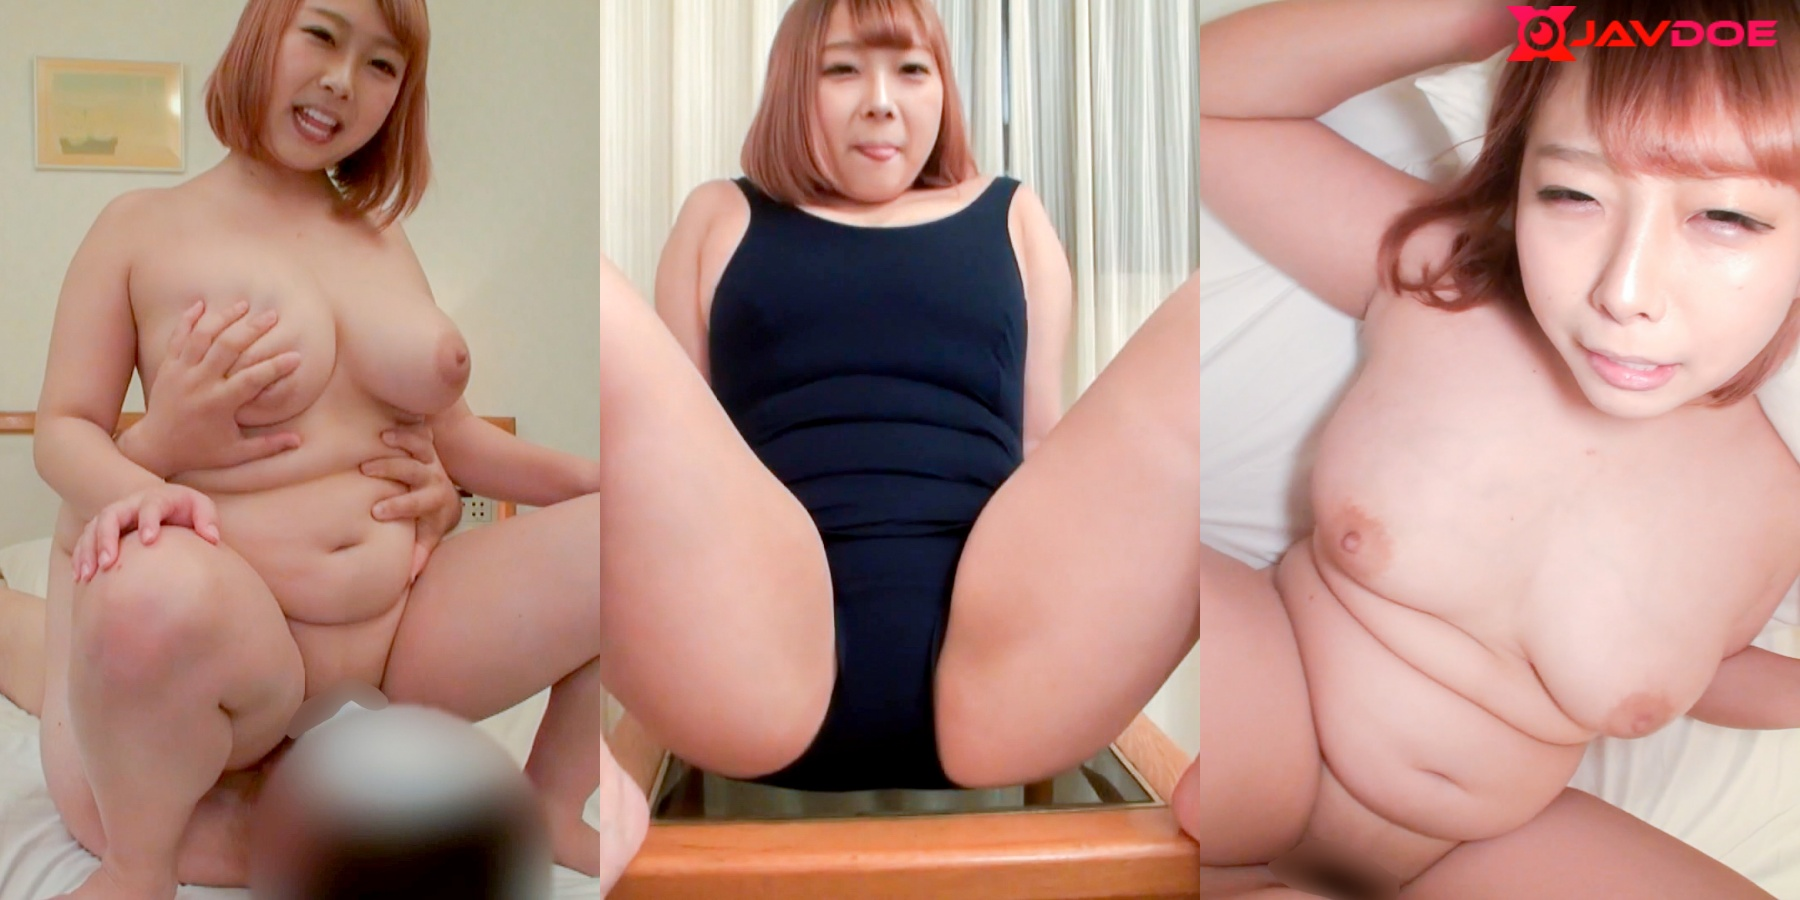 FC2-PPV 1560022 The Second Installment Of The Familiar G-cup Chubby Girl Rio